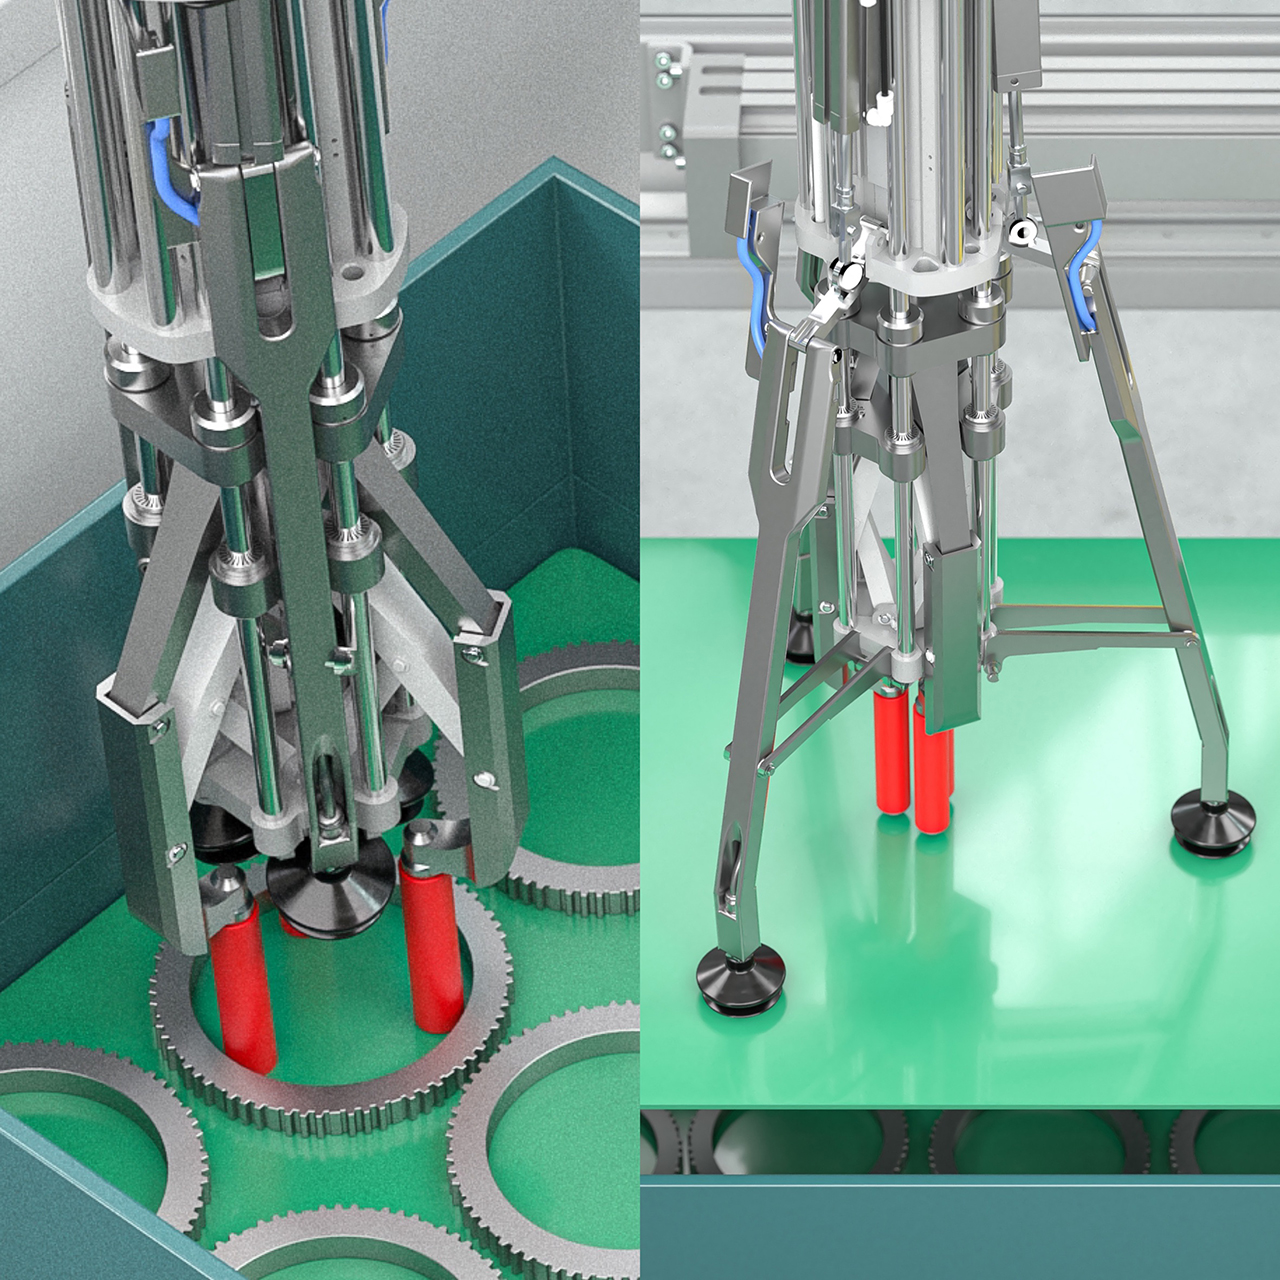 The system is equipped with two different gripper types (Source: Wickert)